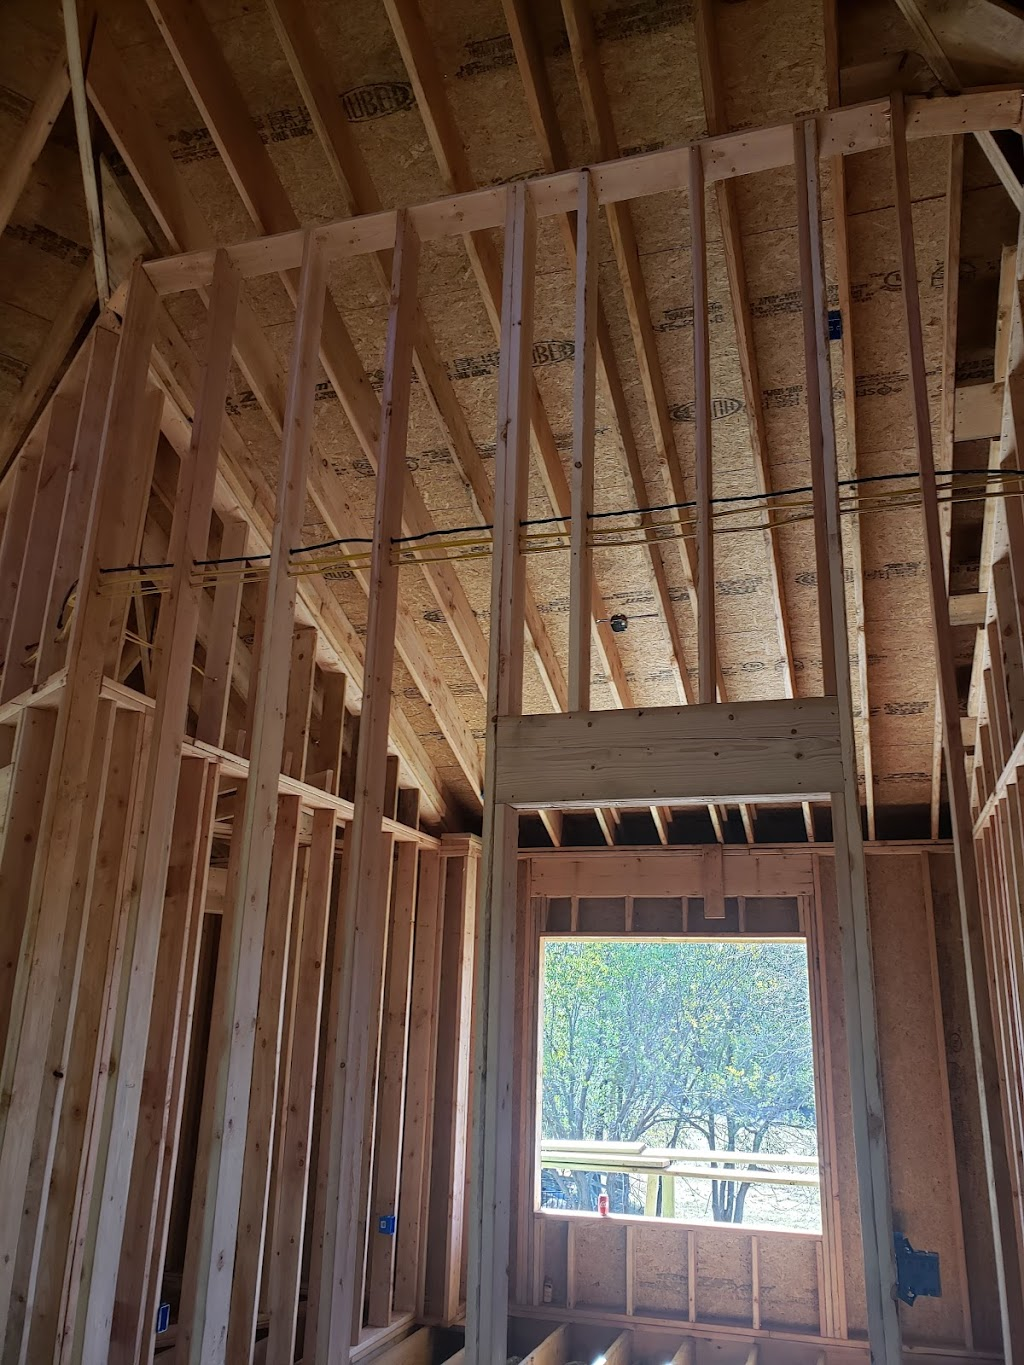 Borges Electric - electrician    Photo 4 of 10   Address: 11609 N 110th E Ave, Collinsville, OK 74021, USA   Phone: (918) 804-6696